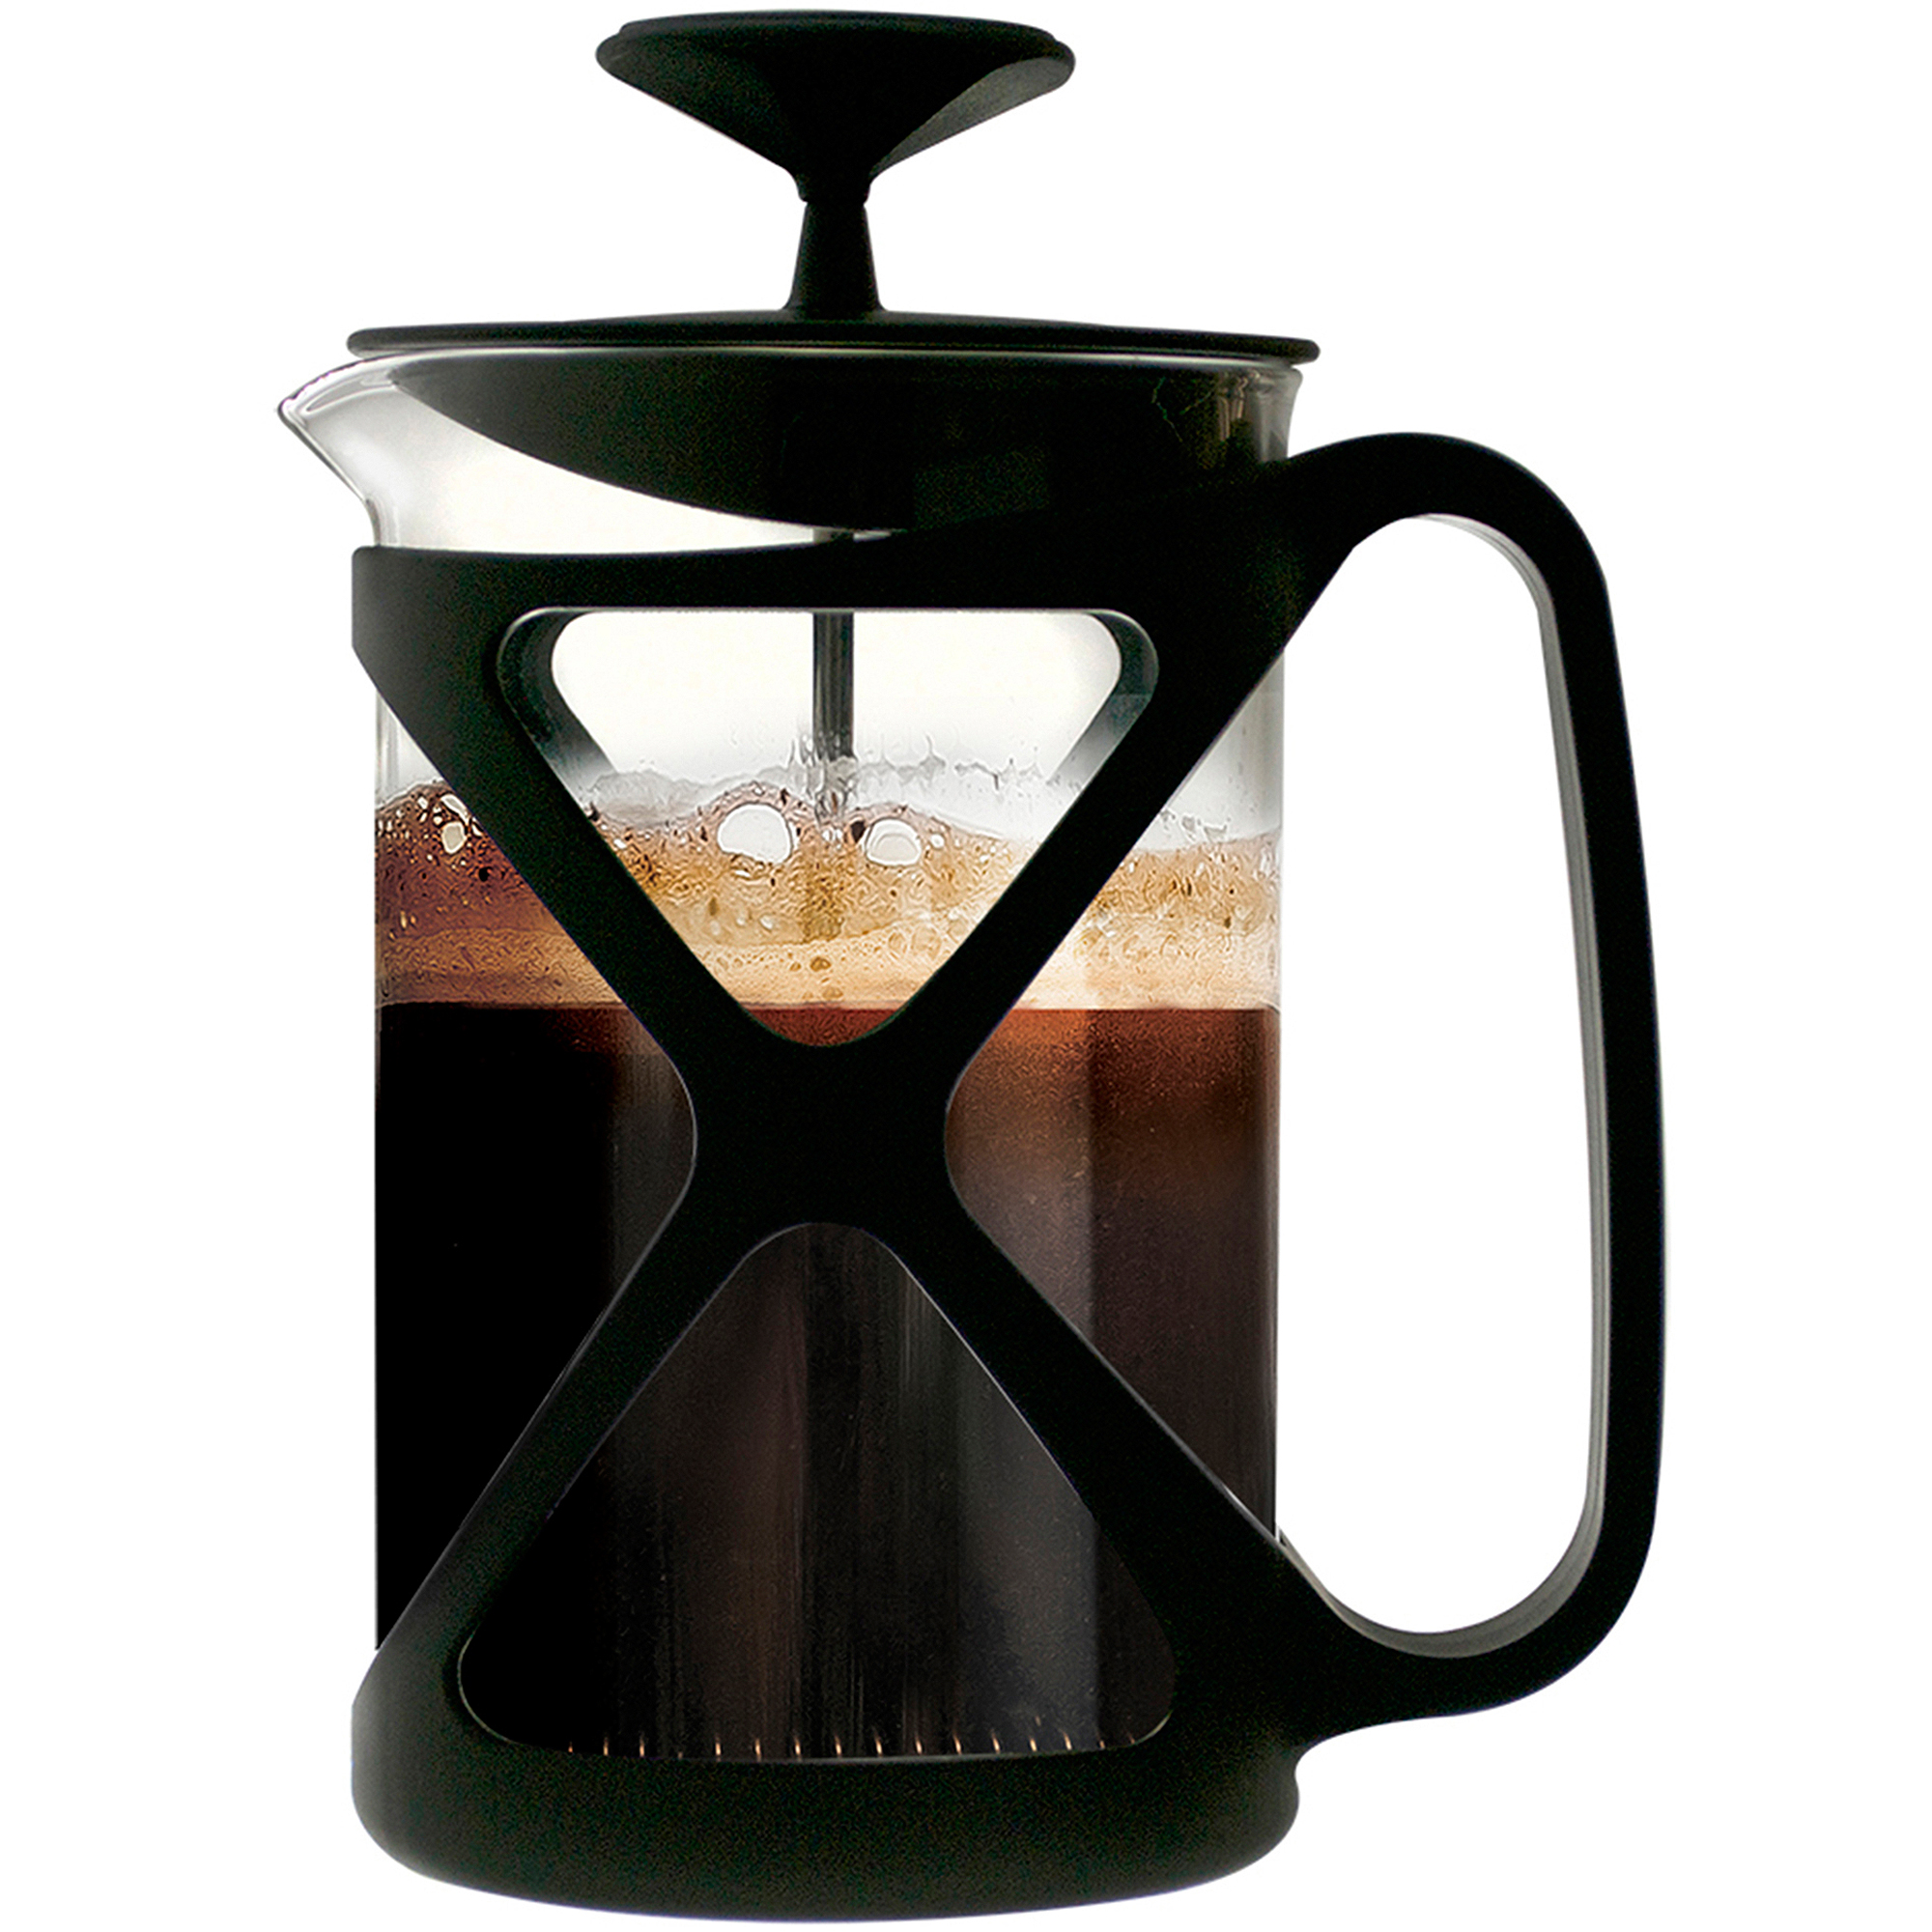 Primula Tempo 6-Cup Coffee Press, Black